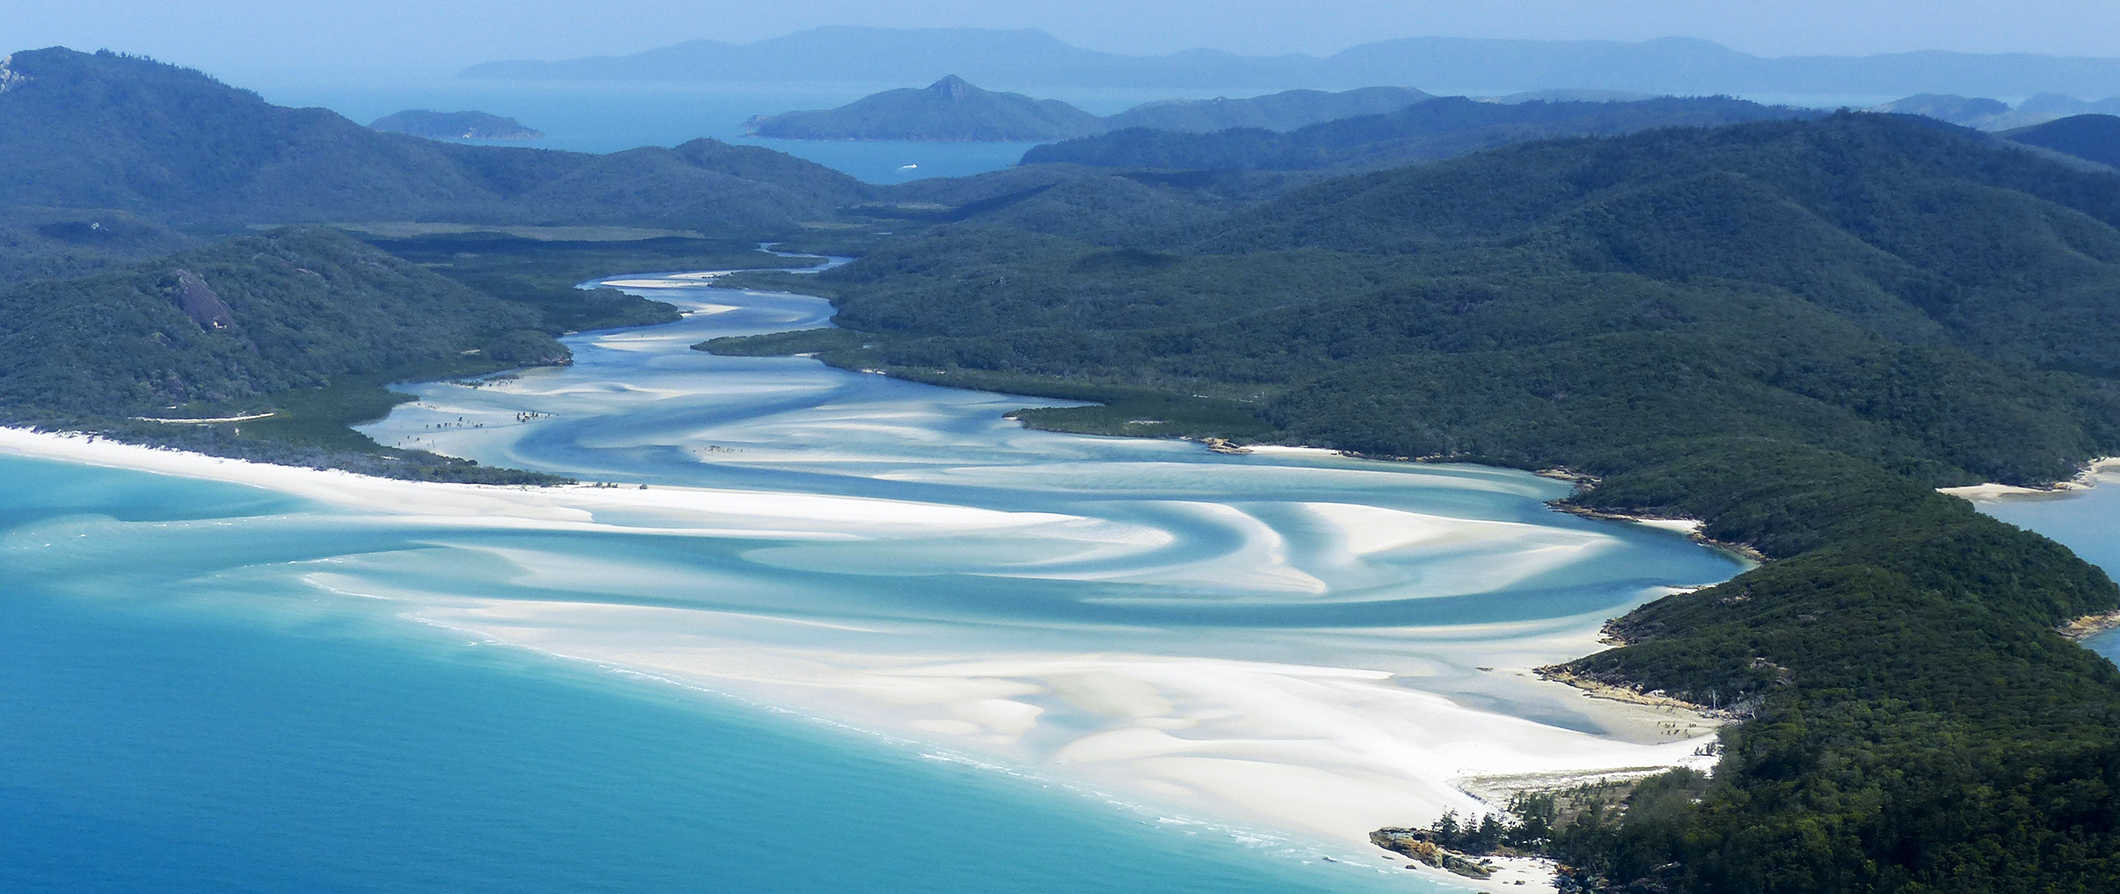 aerial view of the Whitsunday Islands, Australia